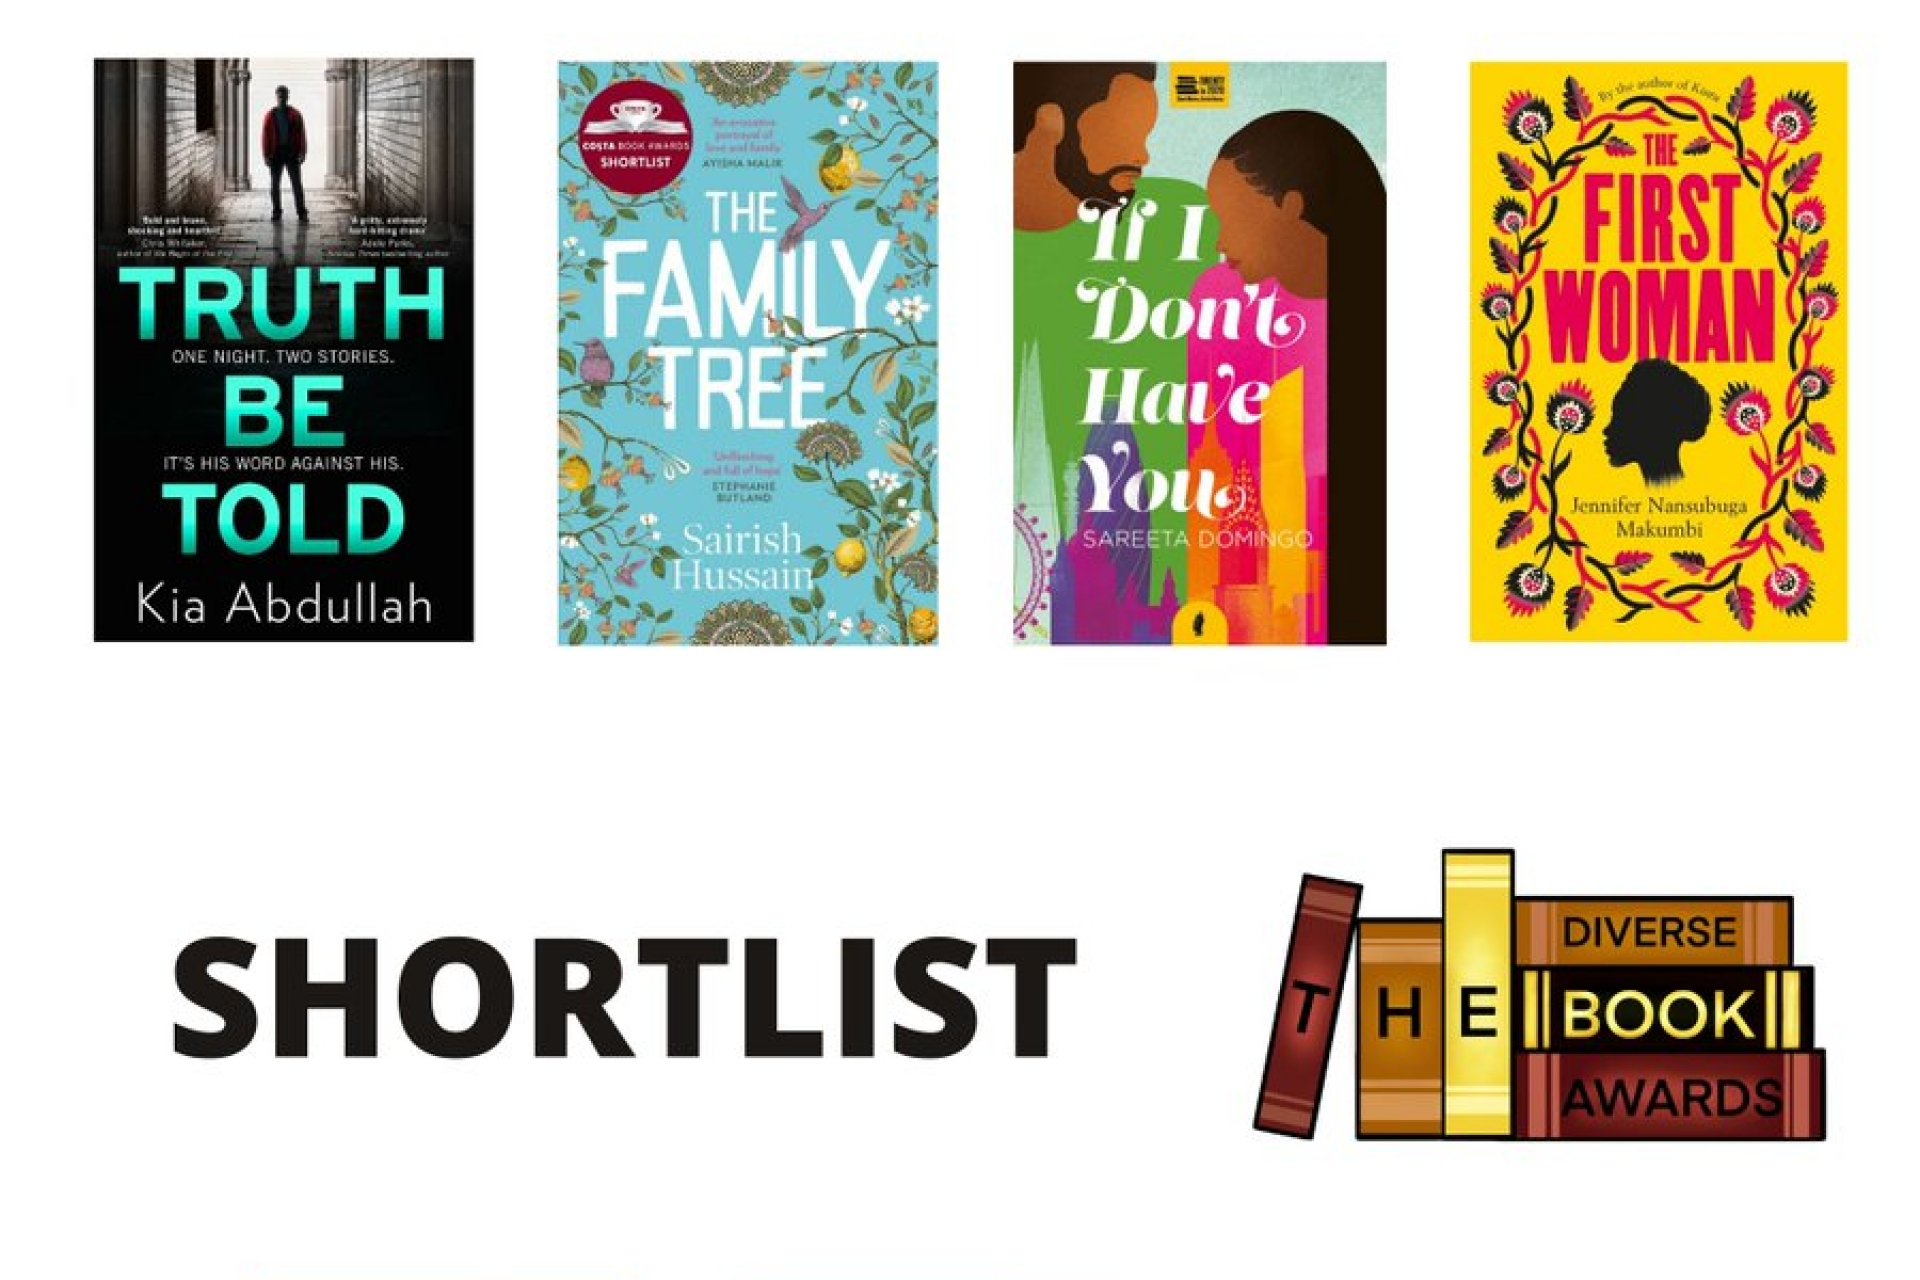 The Diverse Book Awards Shortlist for 2021 is revealed for Kids, YA and Adult